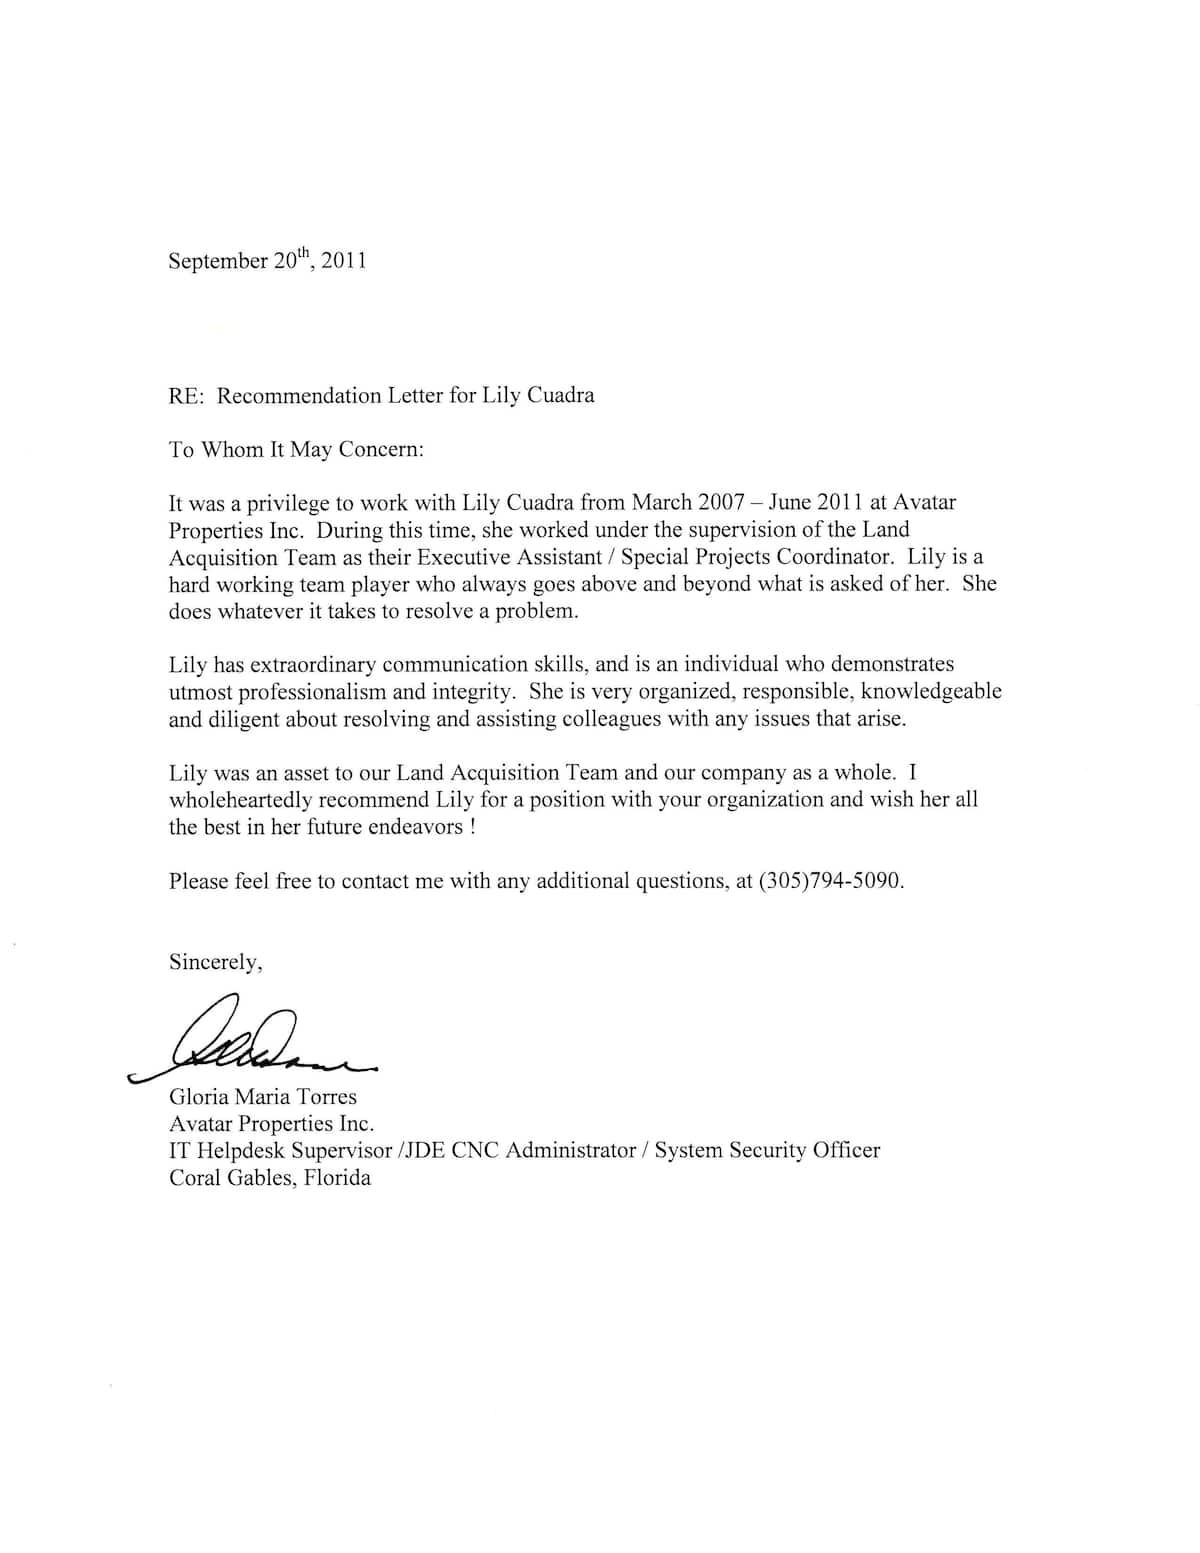 How to write a recommendation letter - format and best